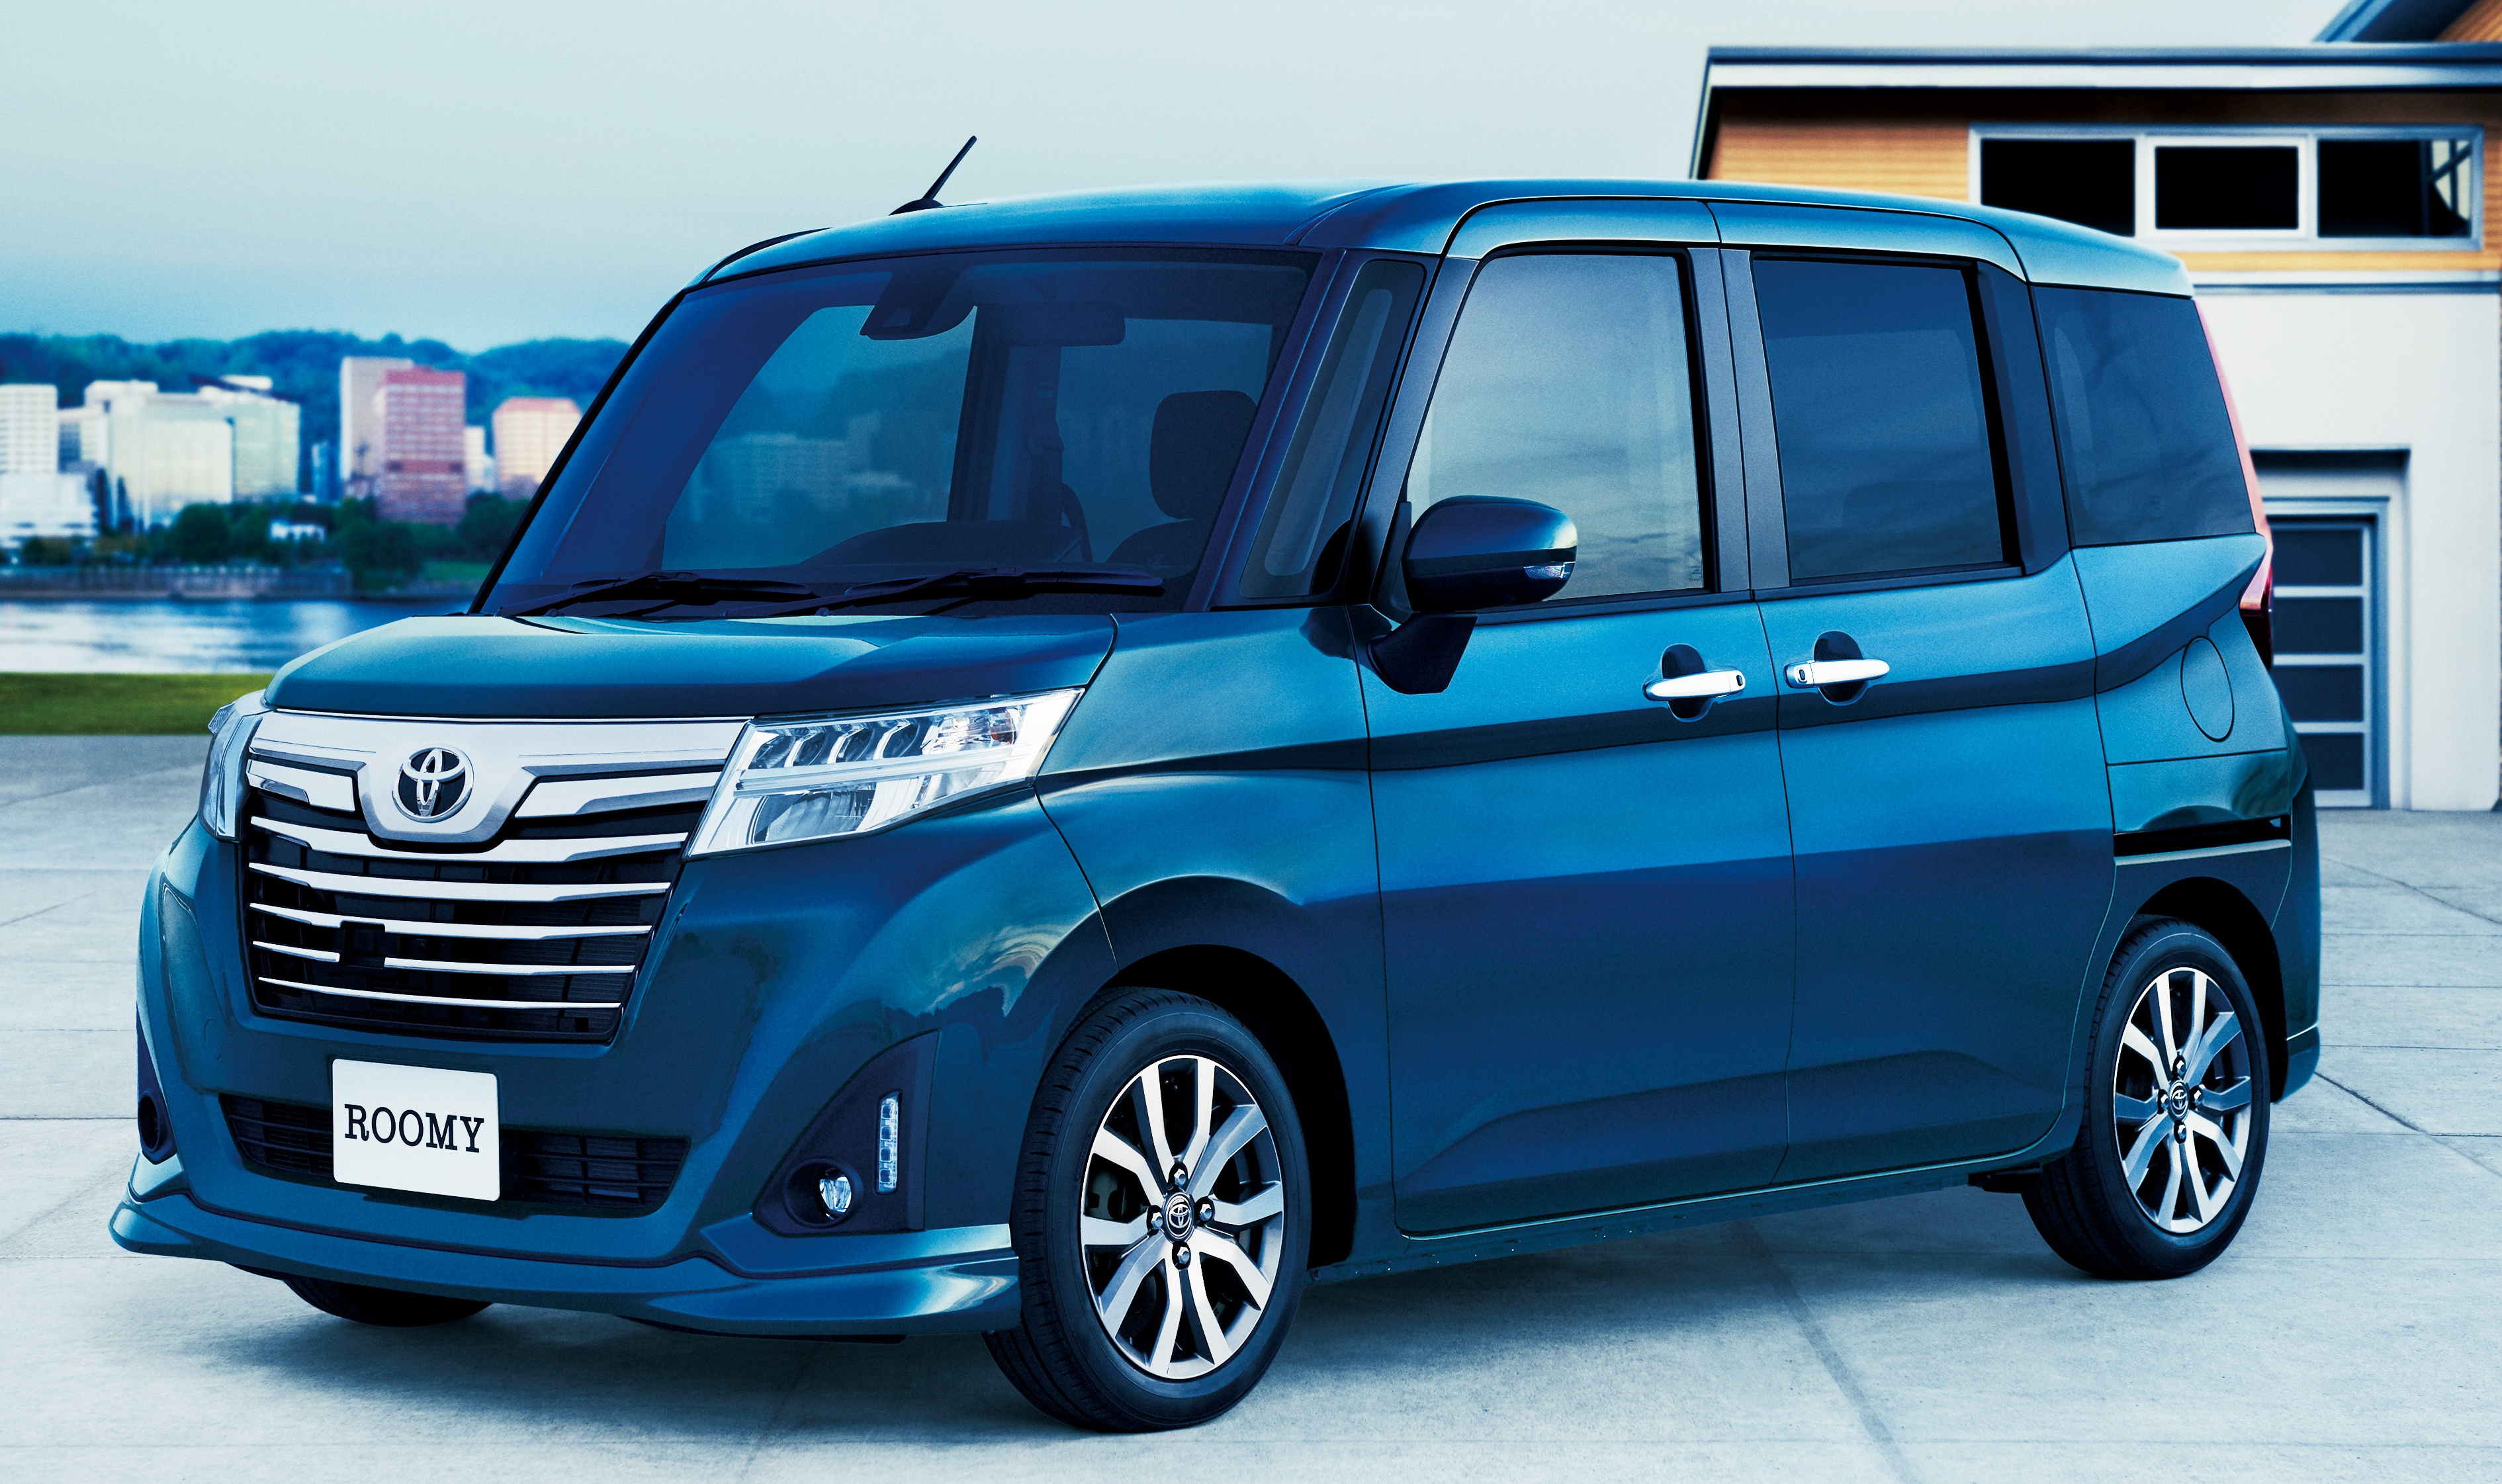 Toyota Roomy And Tank Minivans Launched In Japan Paul Tan